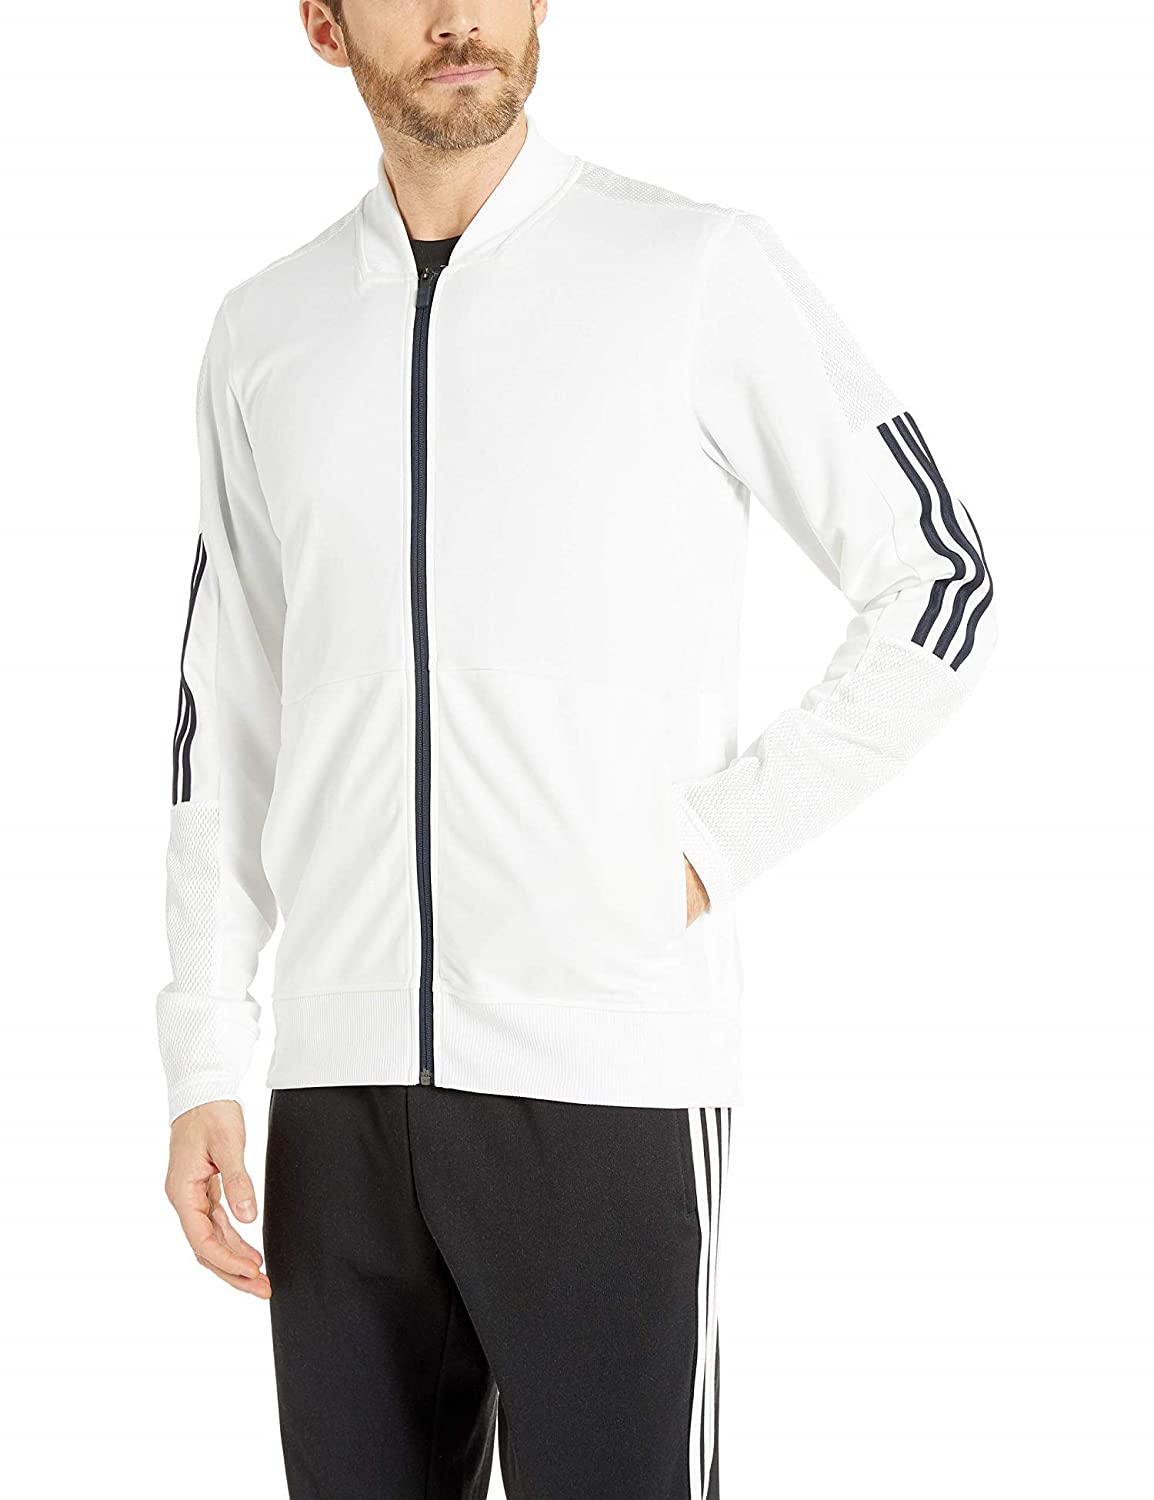 Amazon.com: Chaqueta Adidas para hombre.: Clothing